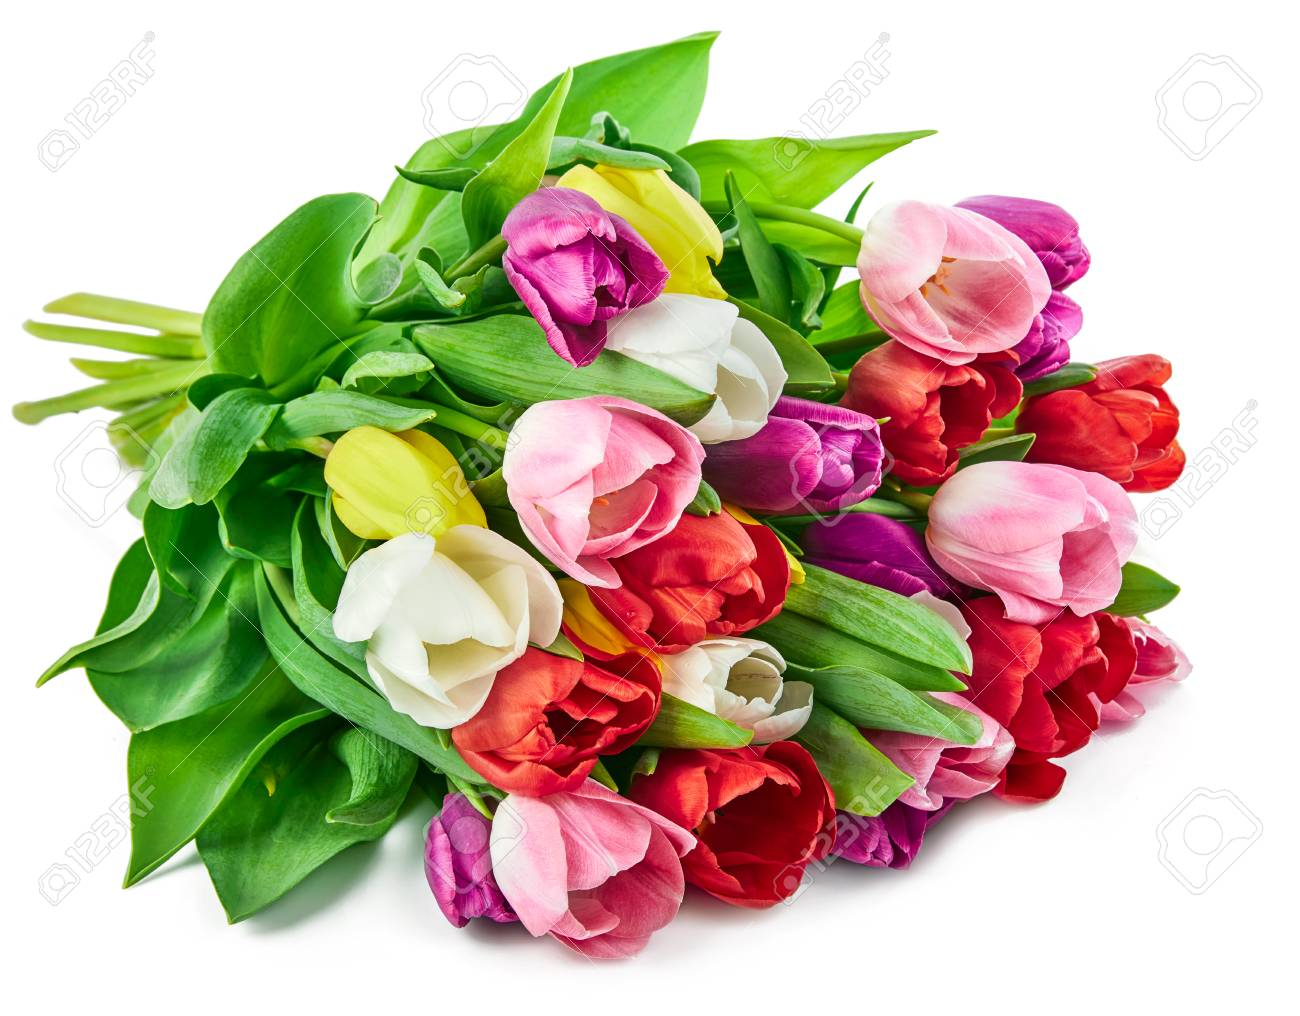 Spring Tulips Flowers Bouquet Romantic Greeting Gift For Birthday Stock Photo Picture And Royalty Free Image Image 97909591